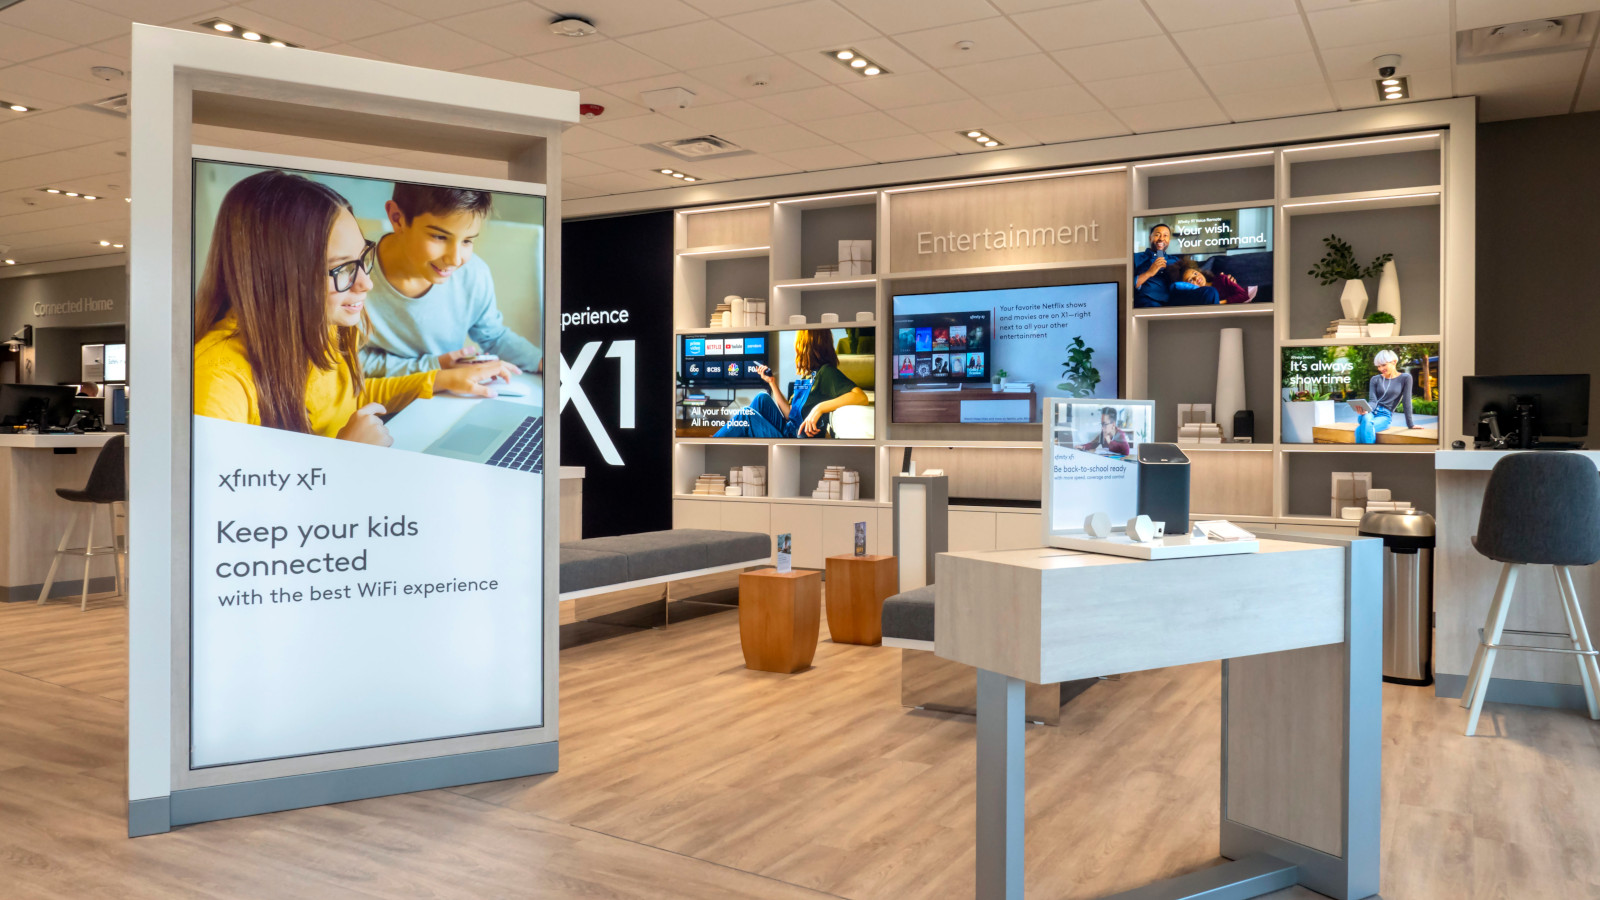 Interior of the Manahawkin Xfinity Retail Store.